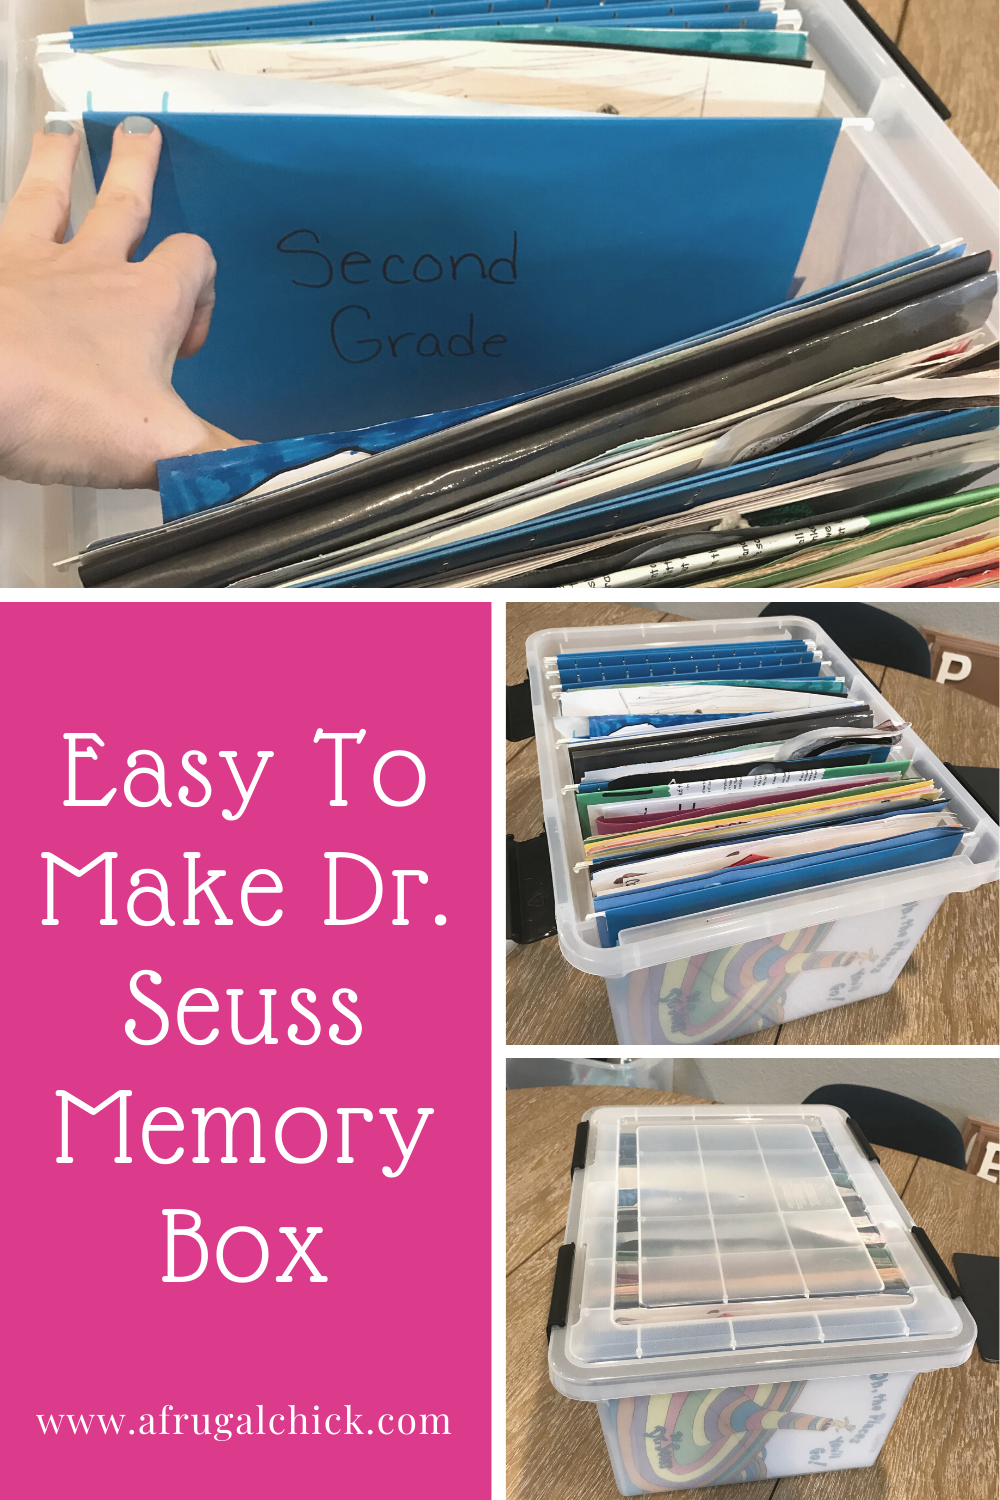 Easy To Make Dr. Seuss Memory Box- In a few easy steps you can create a memory box to give your child at high school graduation!